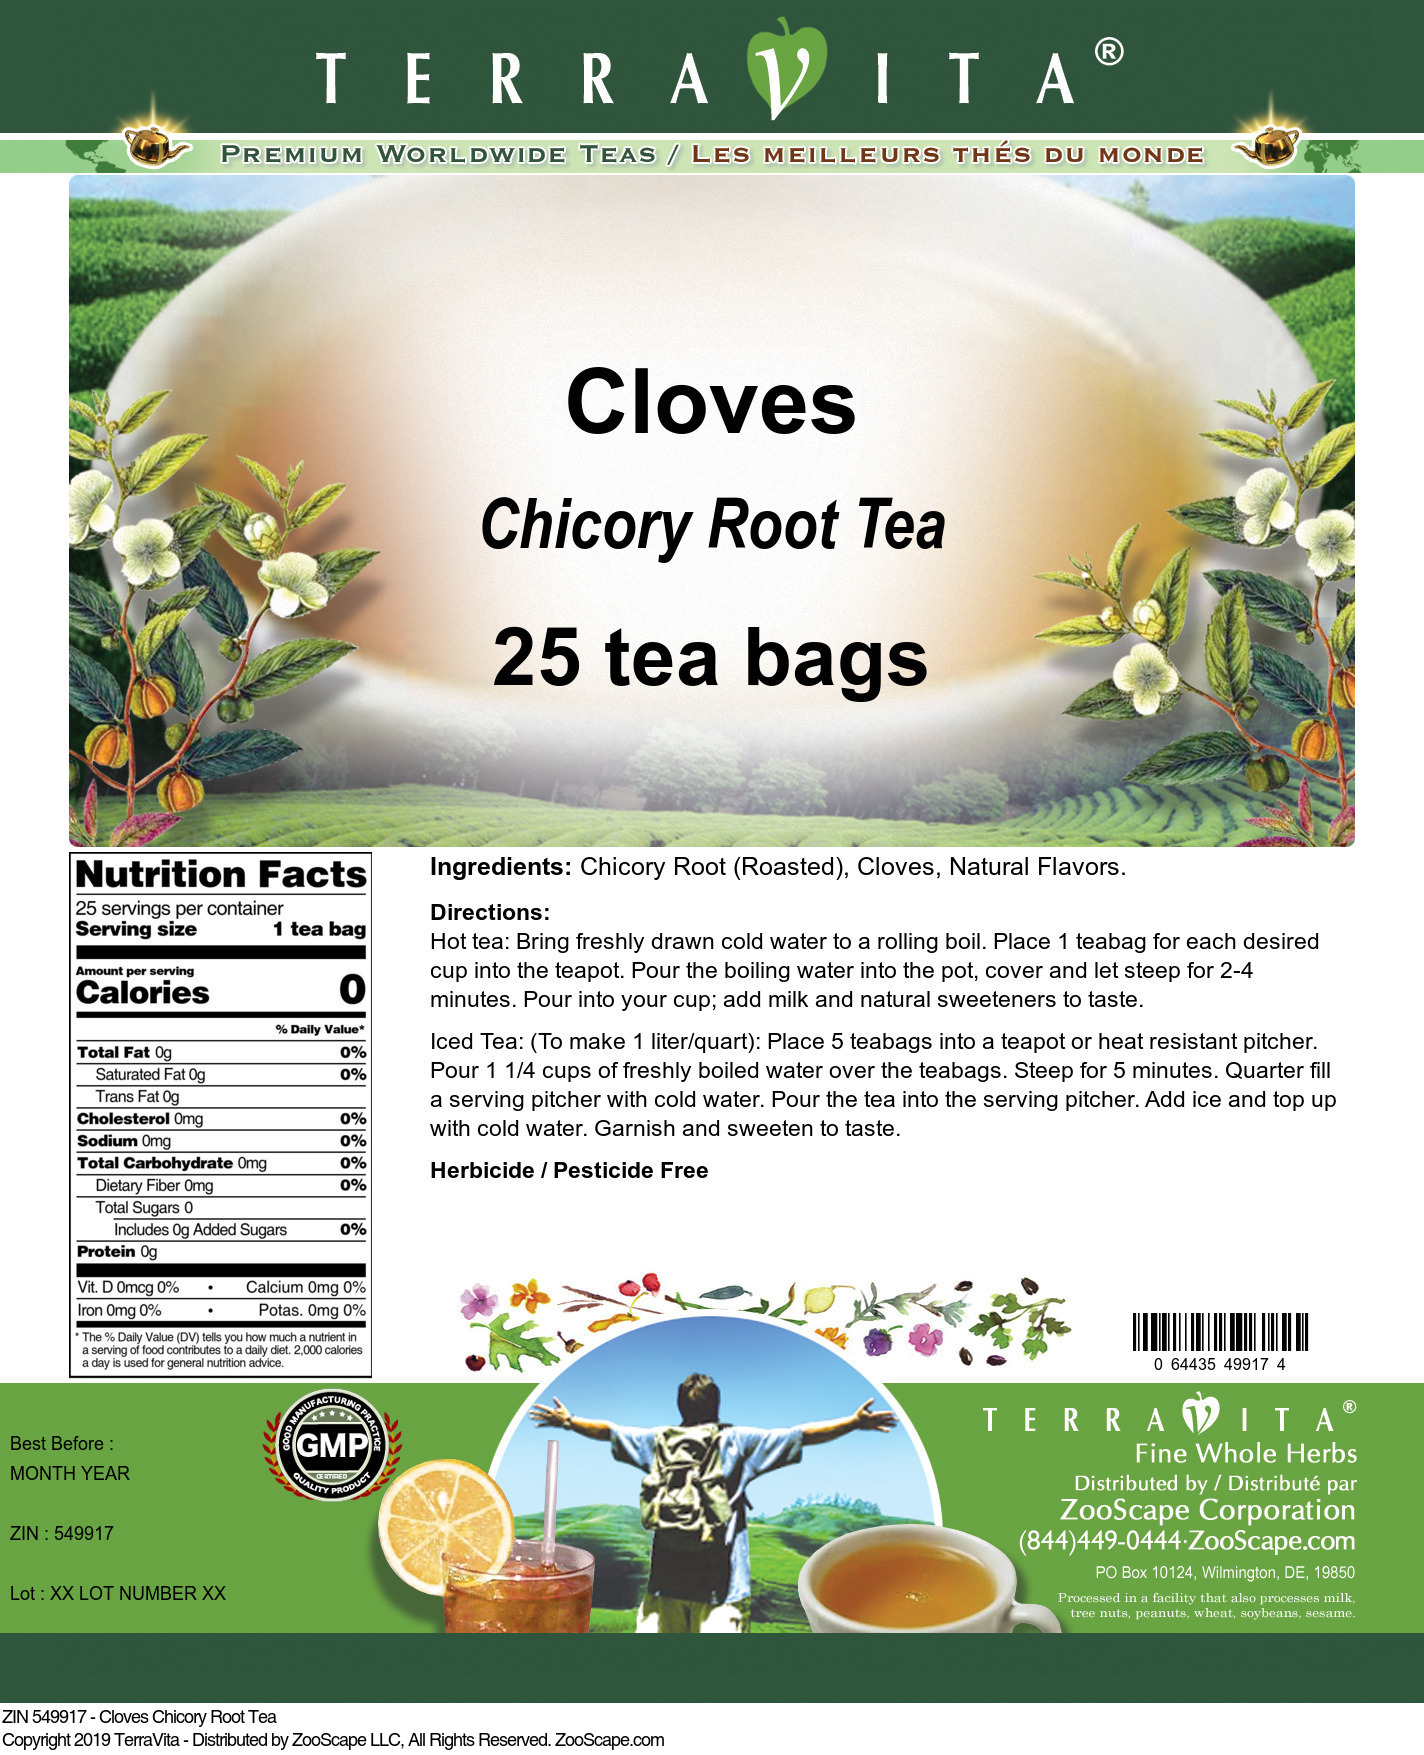 Cloves Chicory Root